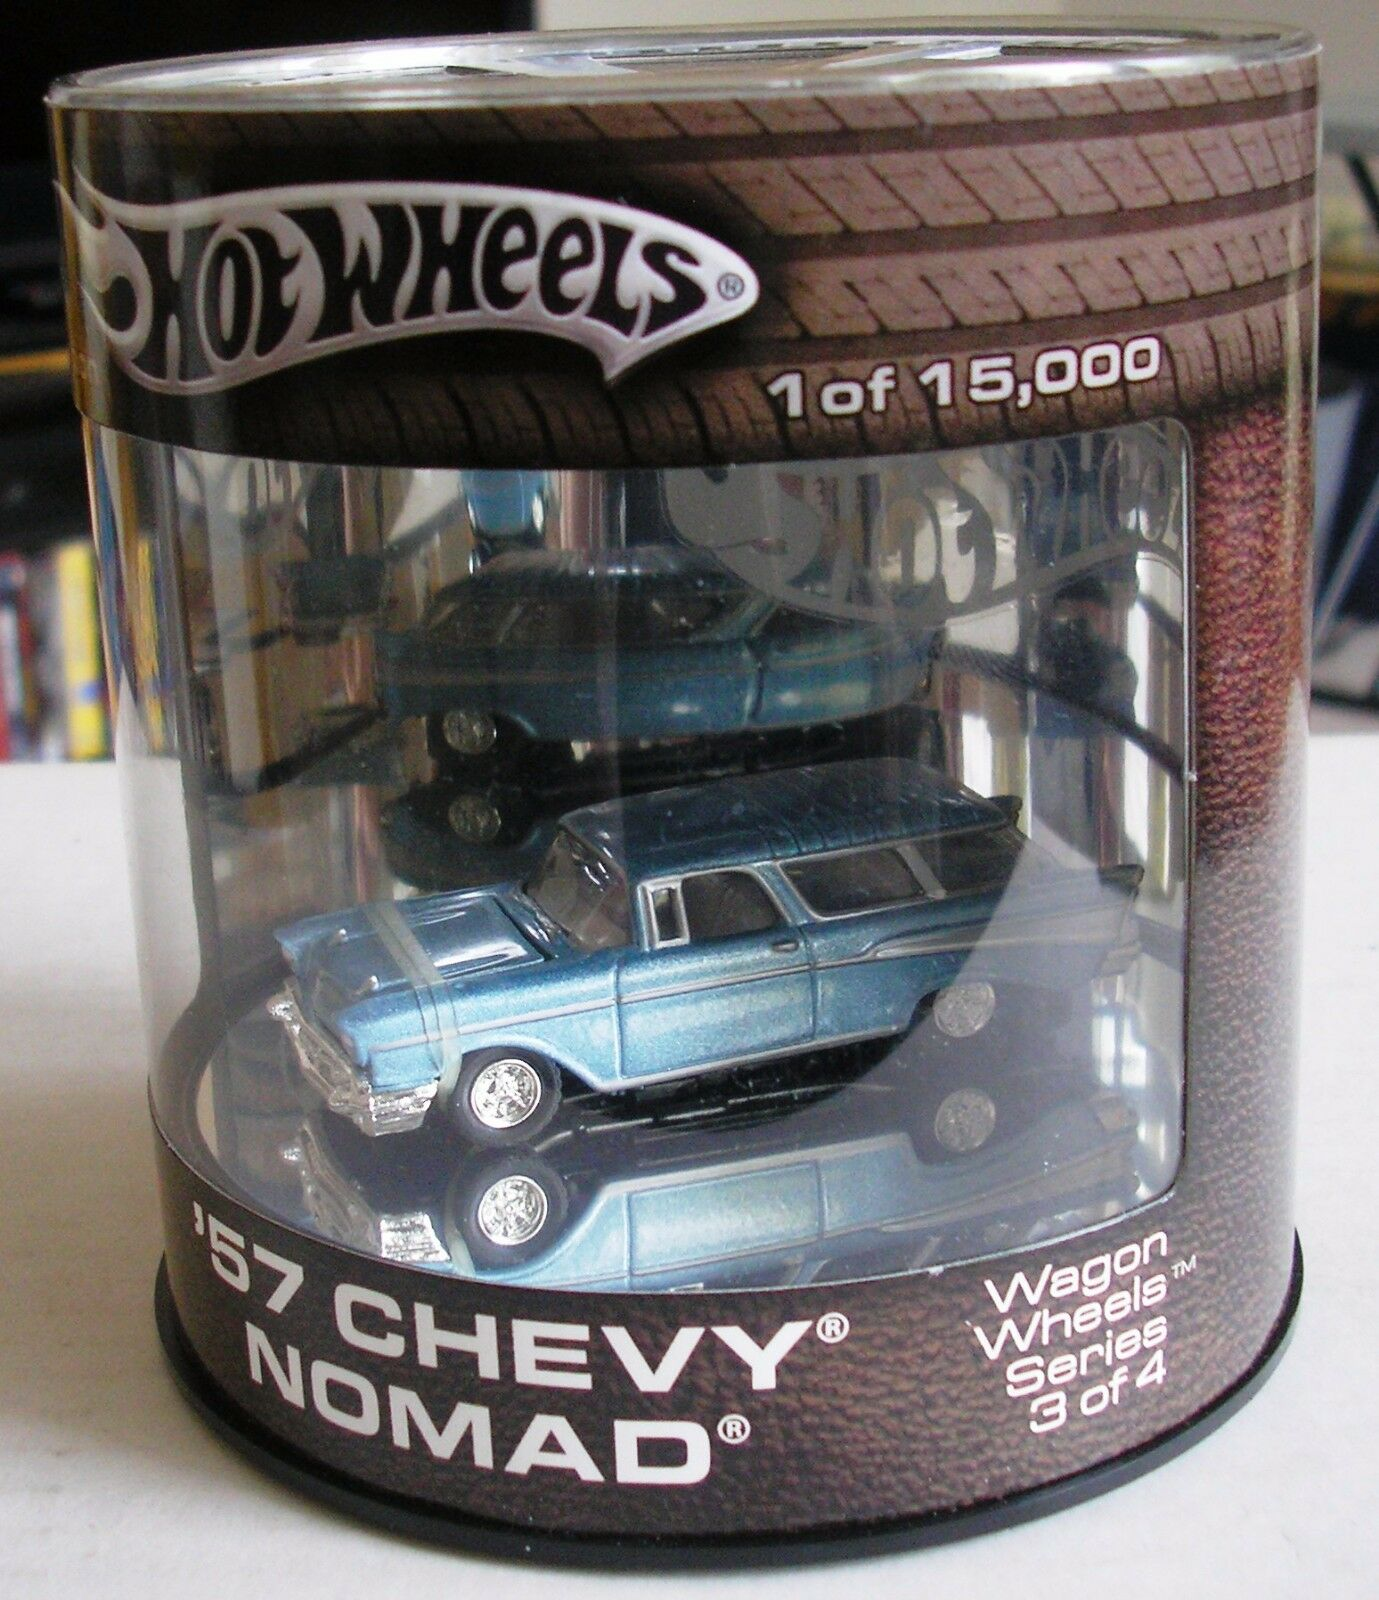 HOT WHEELS - OIL CAN - CANADIAN EXCLUSIVE - 57 CHEVY NOMAD - WAGON WHEELS SERIES